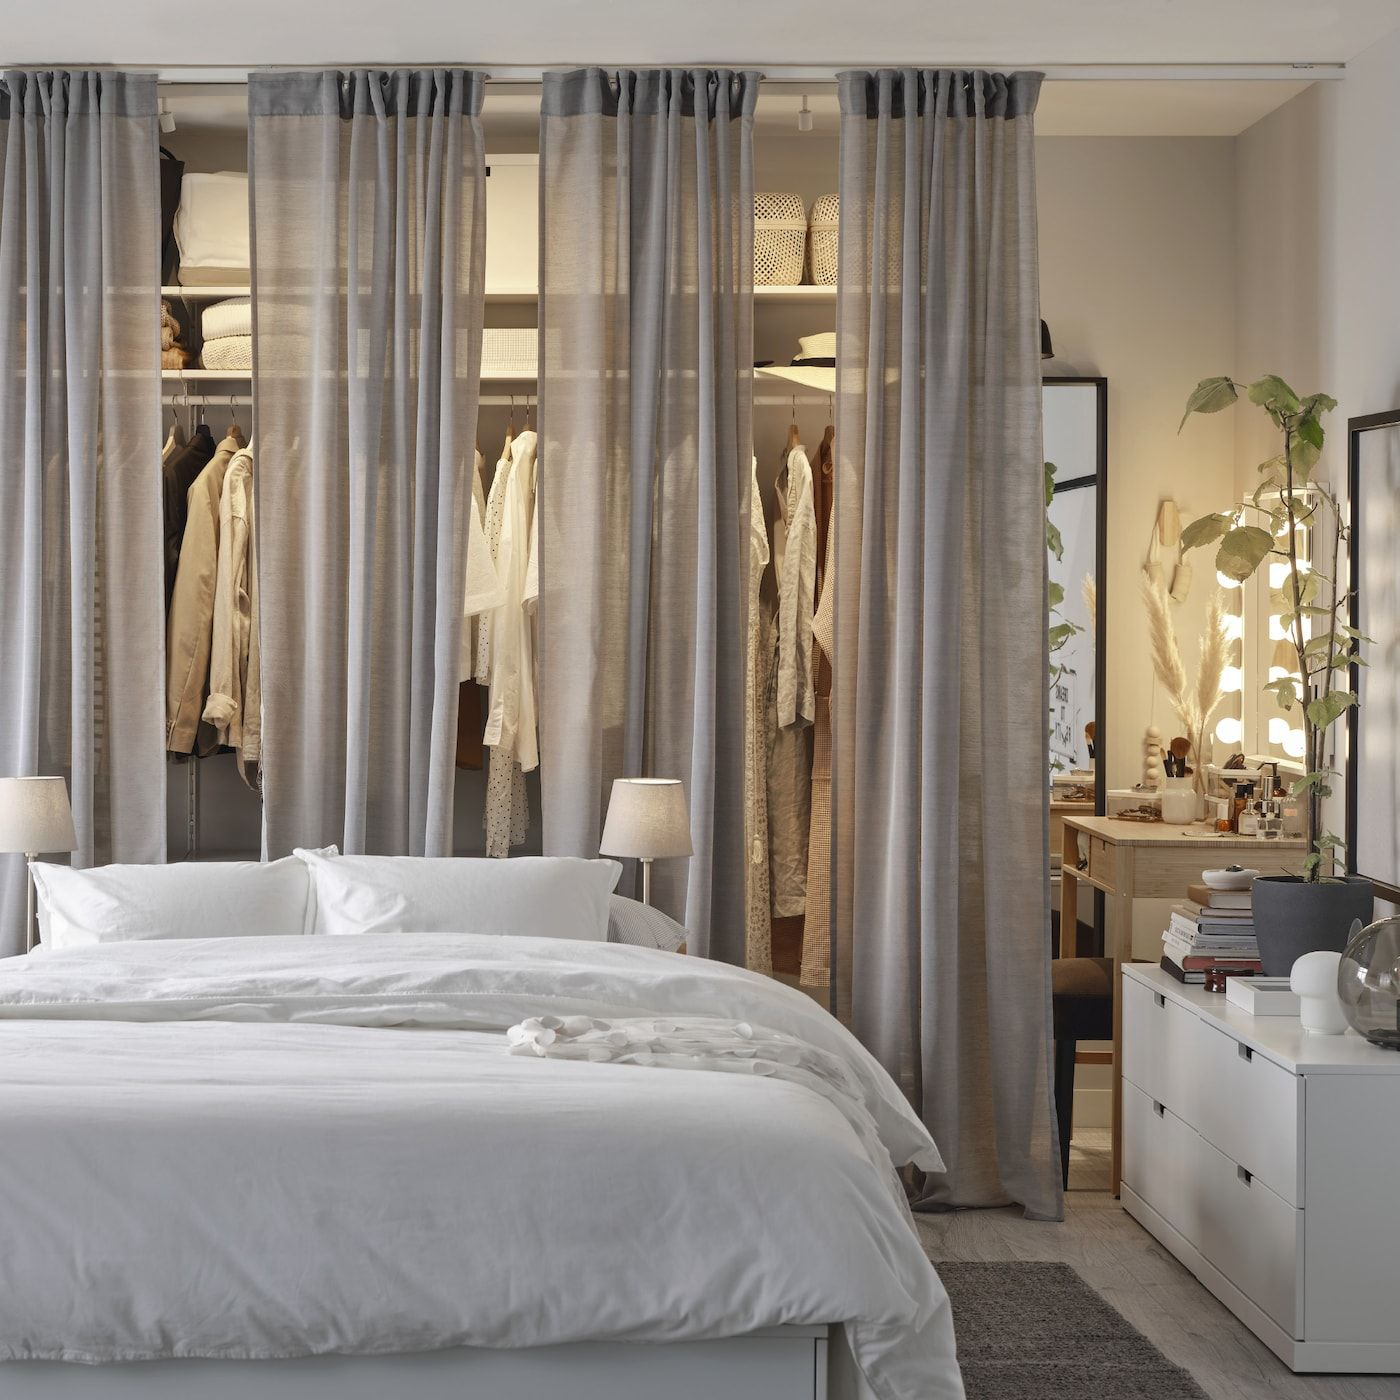 A Bedroom With Chic And Accessible Storage In 2020 Bedroom Styles Bedroom Design Home